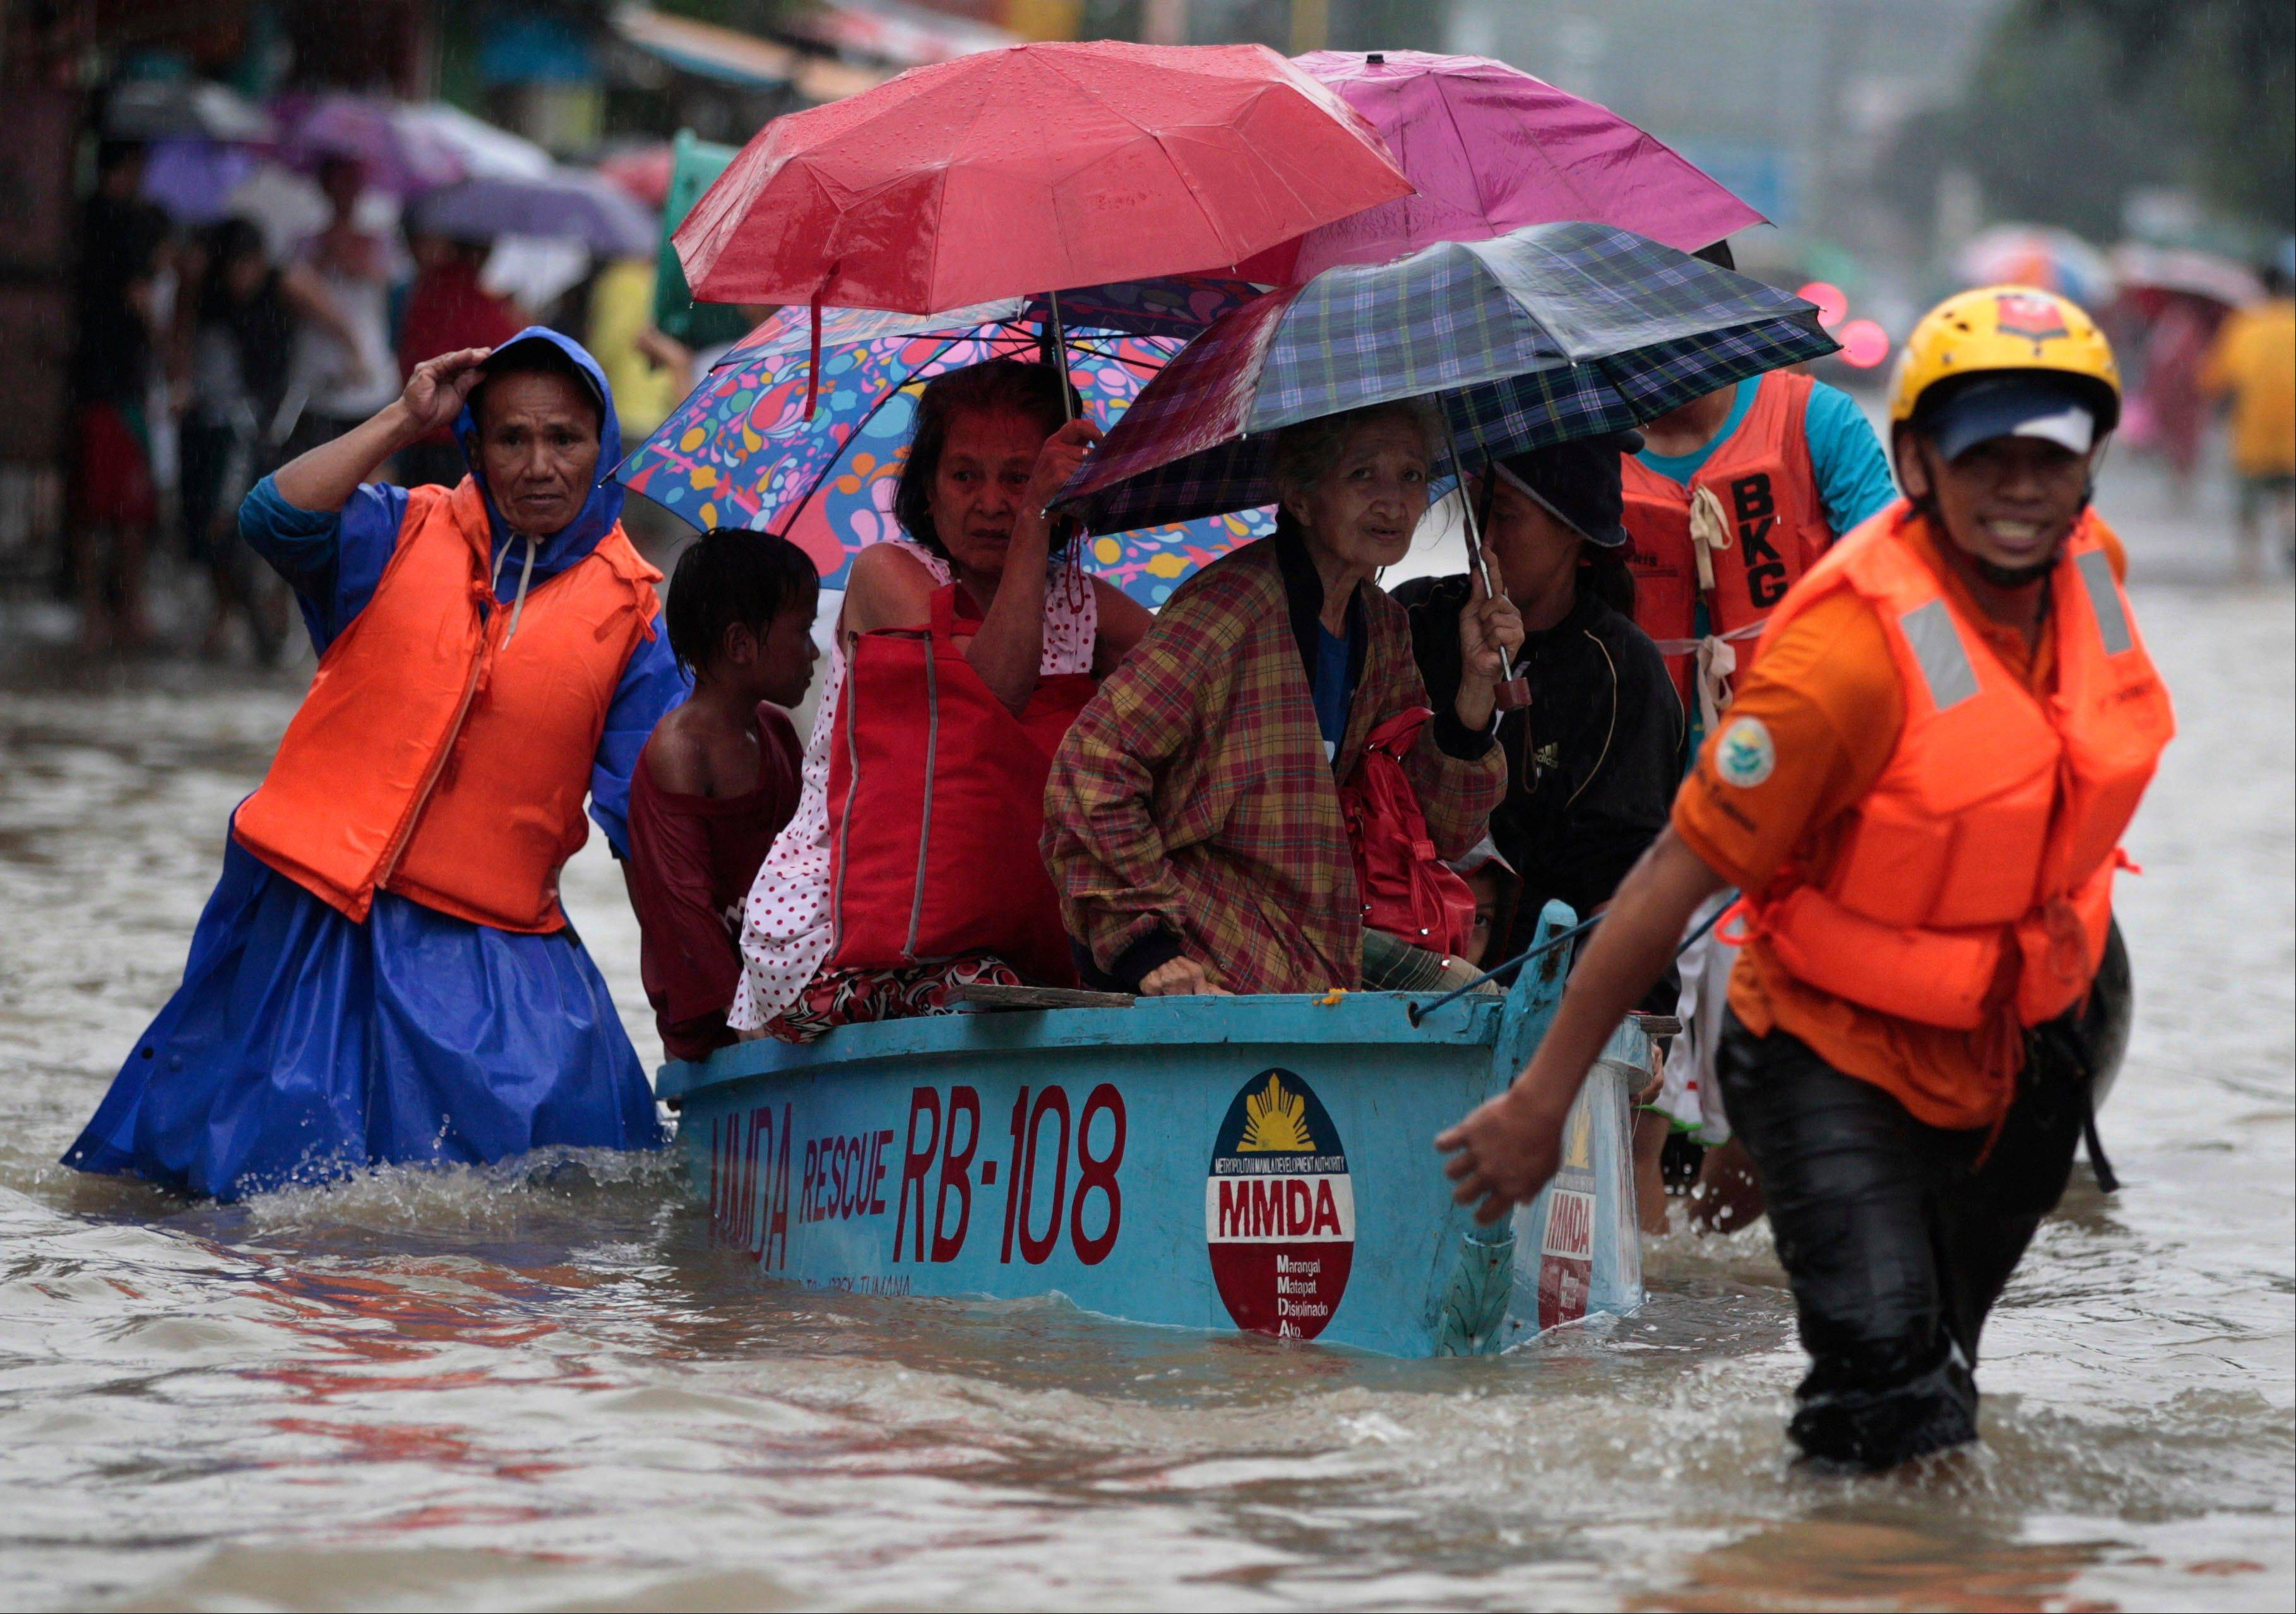 Rescuers pull a boat carrying residents as they enforce evacuation at an area flooded due to a swollen river in Marikina city, east of Manila, Philippines Tuesday, Aug. 20, 2013. Some of the Philippines� heaviest rains on record fell for a second day Tuesday, turning the capital�s roads into rivers and trapping tens of thousands of people in homes and shelters. The government suspended all work except rescues and disaster response.